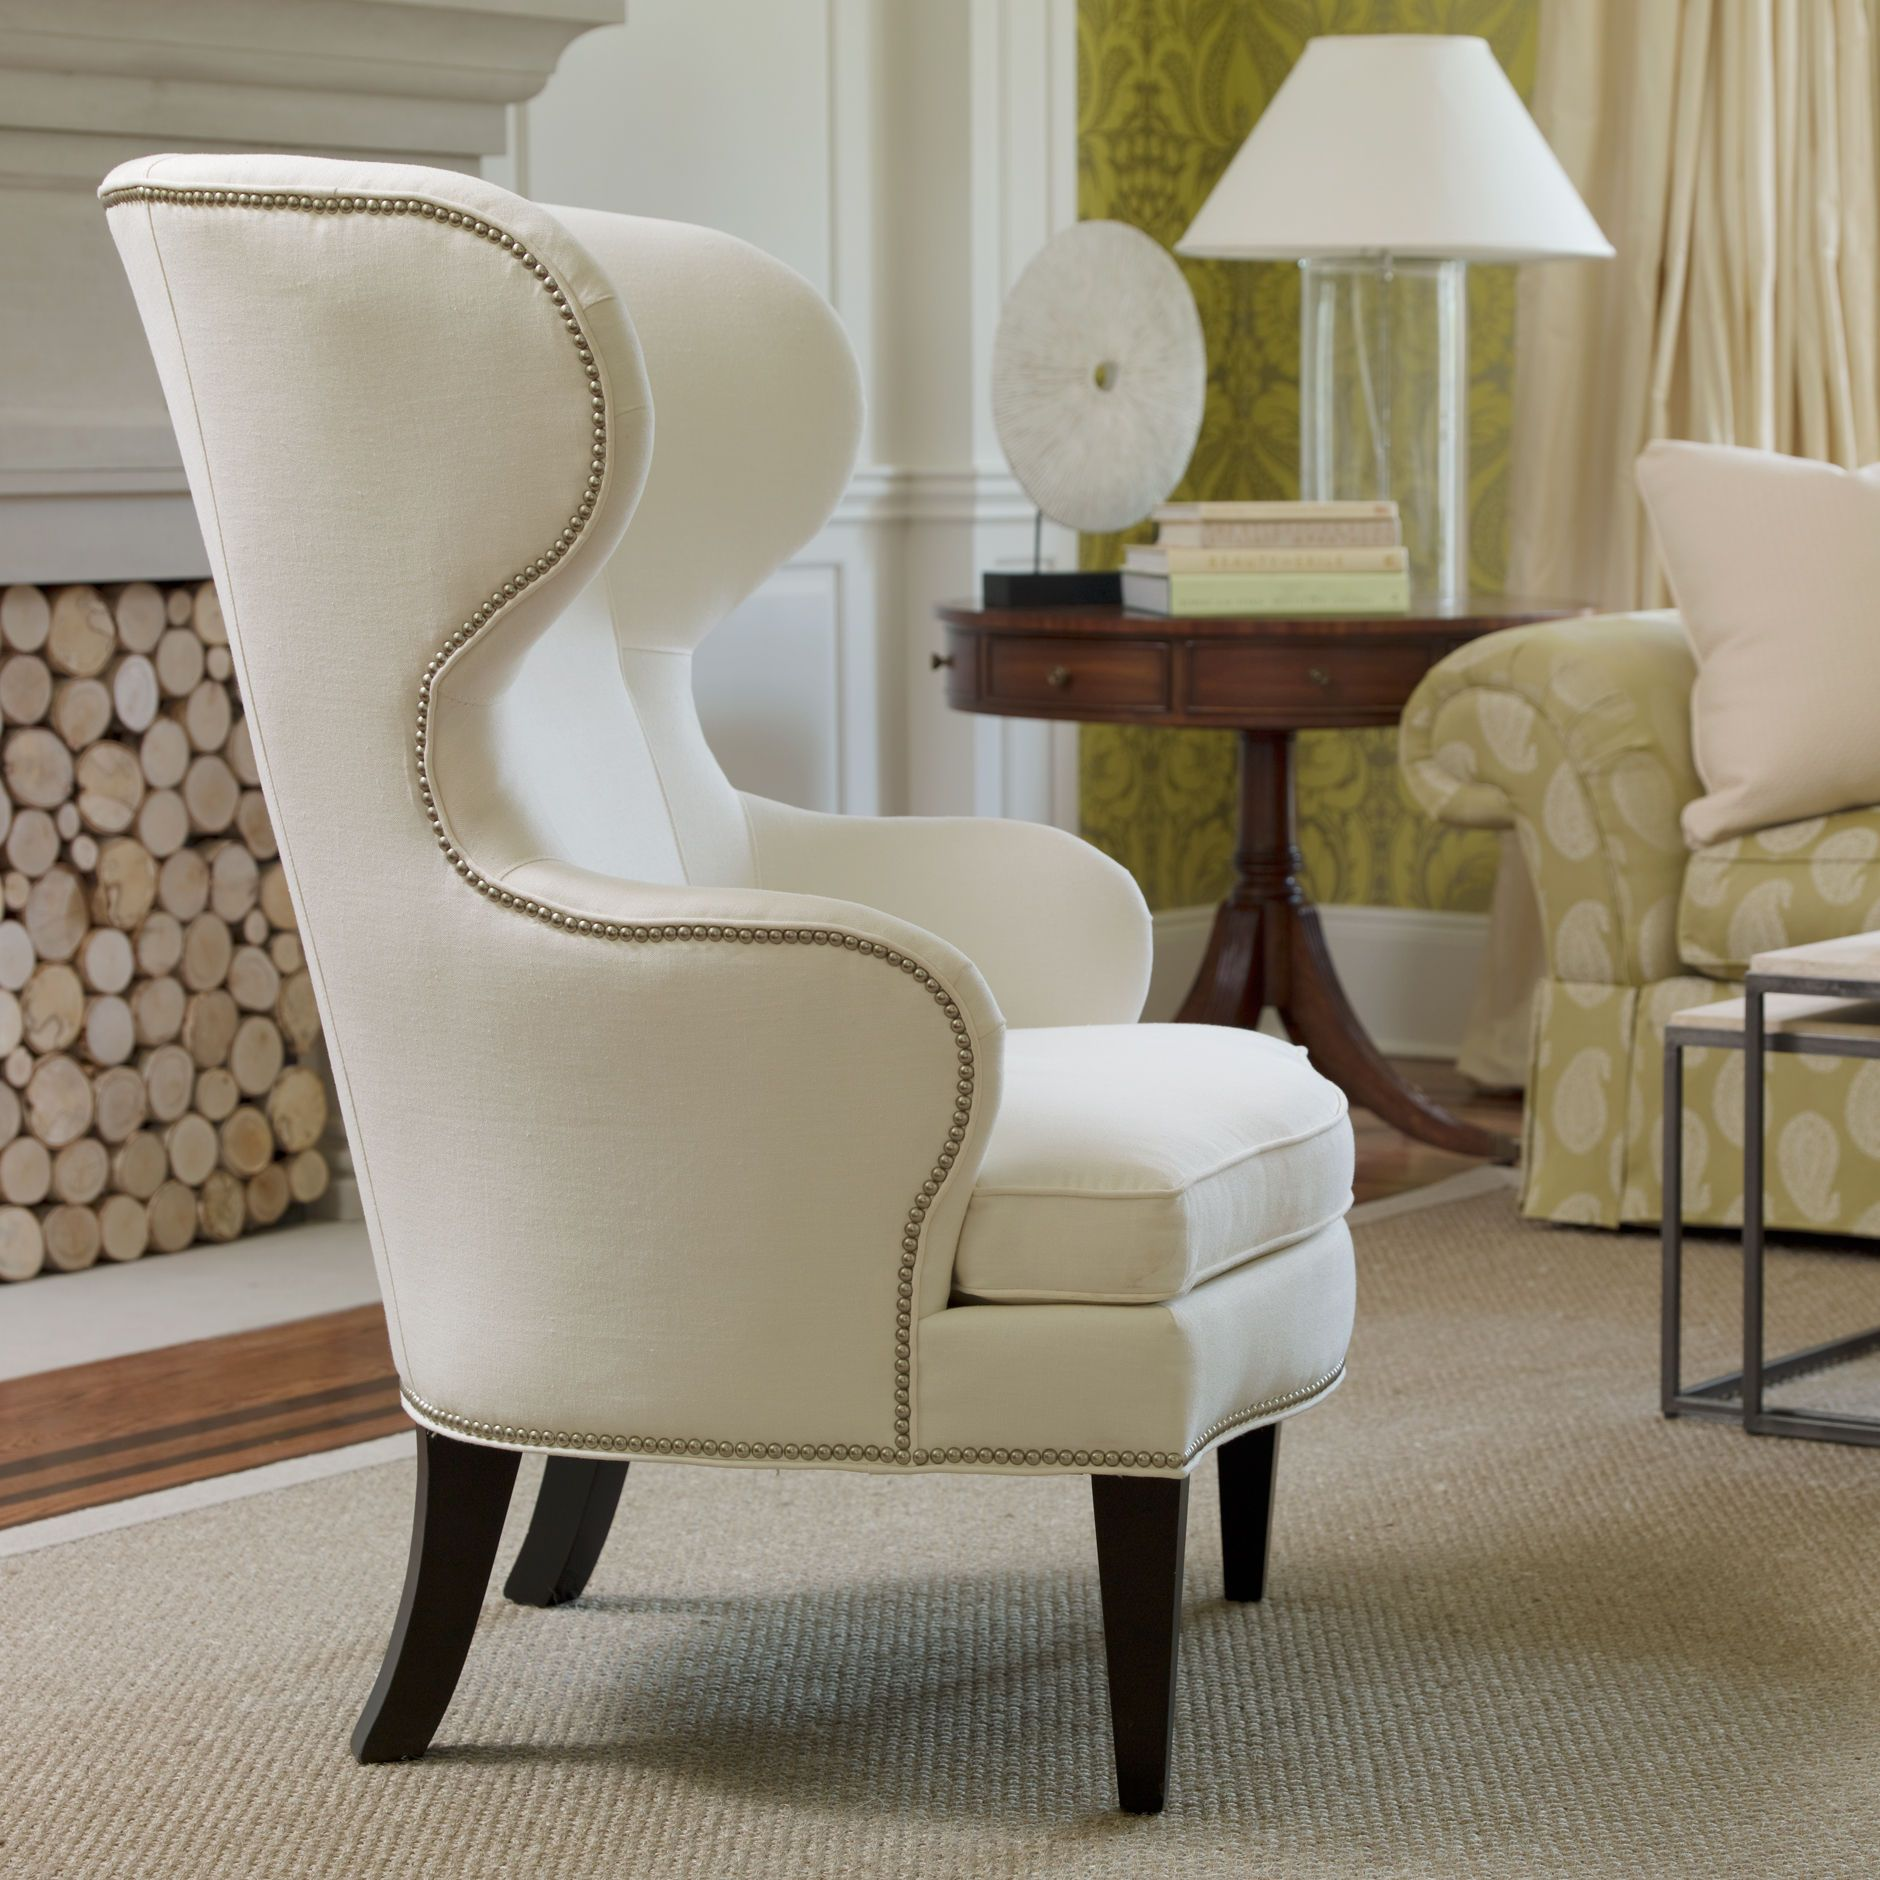 Room · Rand Chair From Ethan Allen.